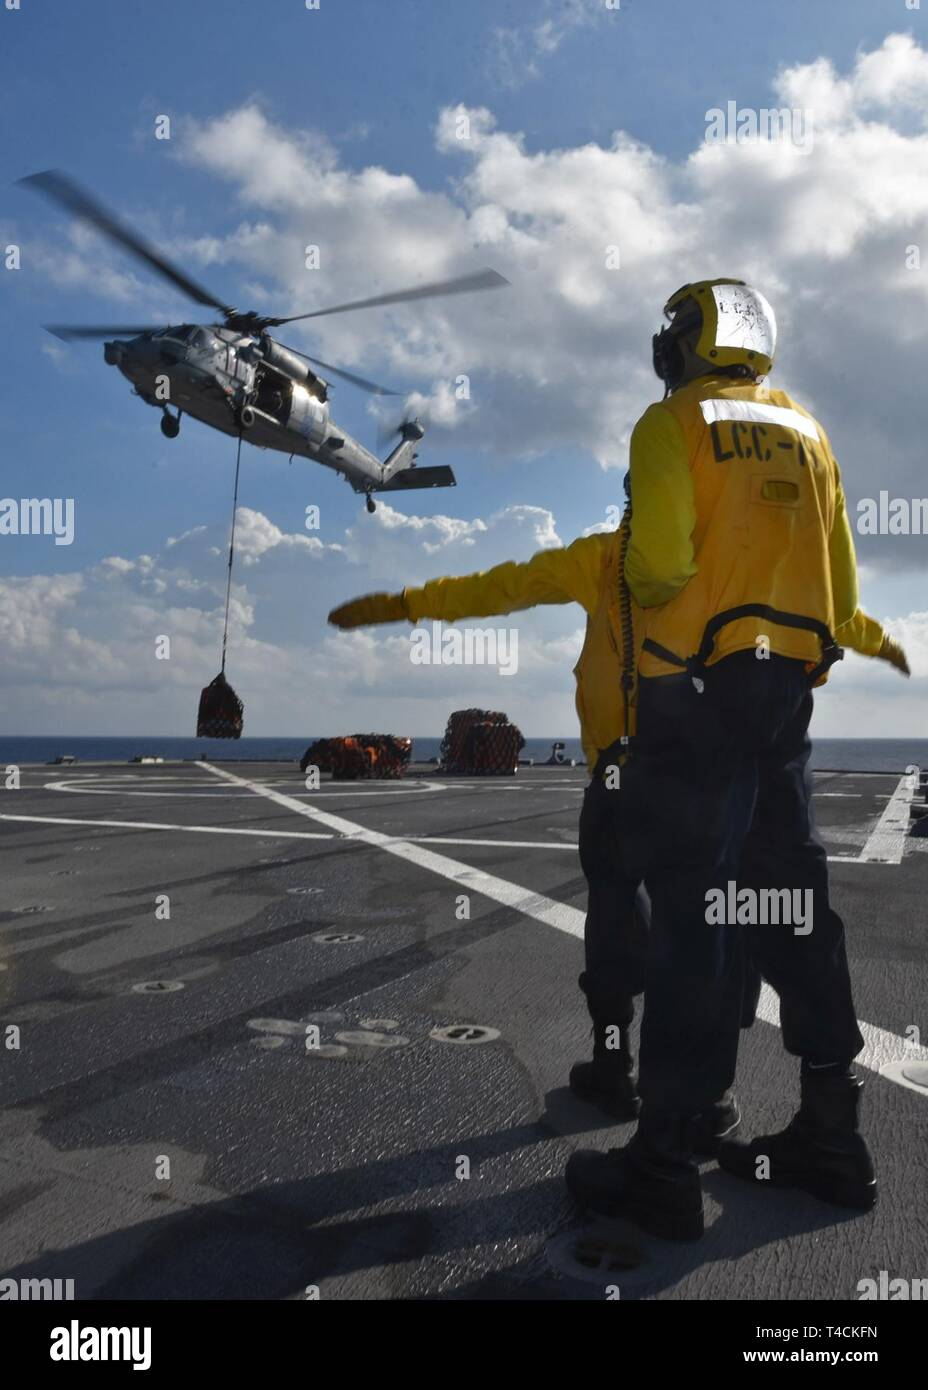 SOUTH CHINA SEA (March 20, 2019) - Boatswain's Mate 2nd Class Tyjhay McCain, from South Bend, Ind., and Boatswain's Mate Seaman Shawn Bernard Jr., from Atlanta, launch an MH-60S Sea Hawk helicopter from the Golden Falcons of Helicopter Sea Combat Squadron 12 during a vertical replenishment aboard U.S. 7th Fleet Flagship USS Blue Ridge (LCC 19). Blue Ridge is the oldest operational ship in the Navy and, as 7th Fleet command ship, actively works to foster relationships with allies and partners in the Indo-Pacific Region. - Stock Image